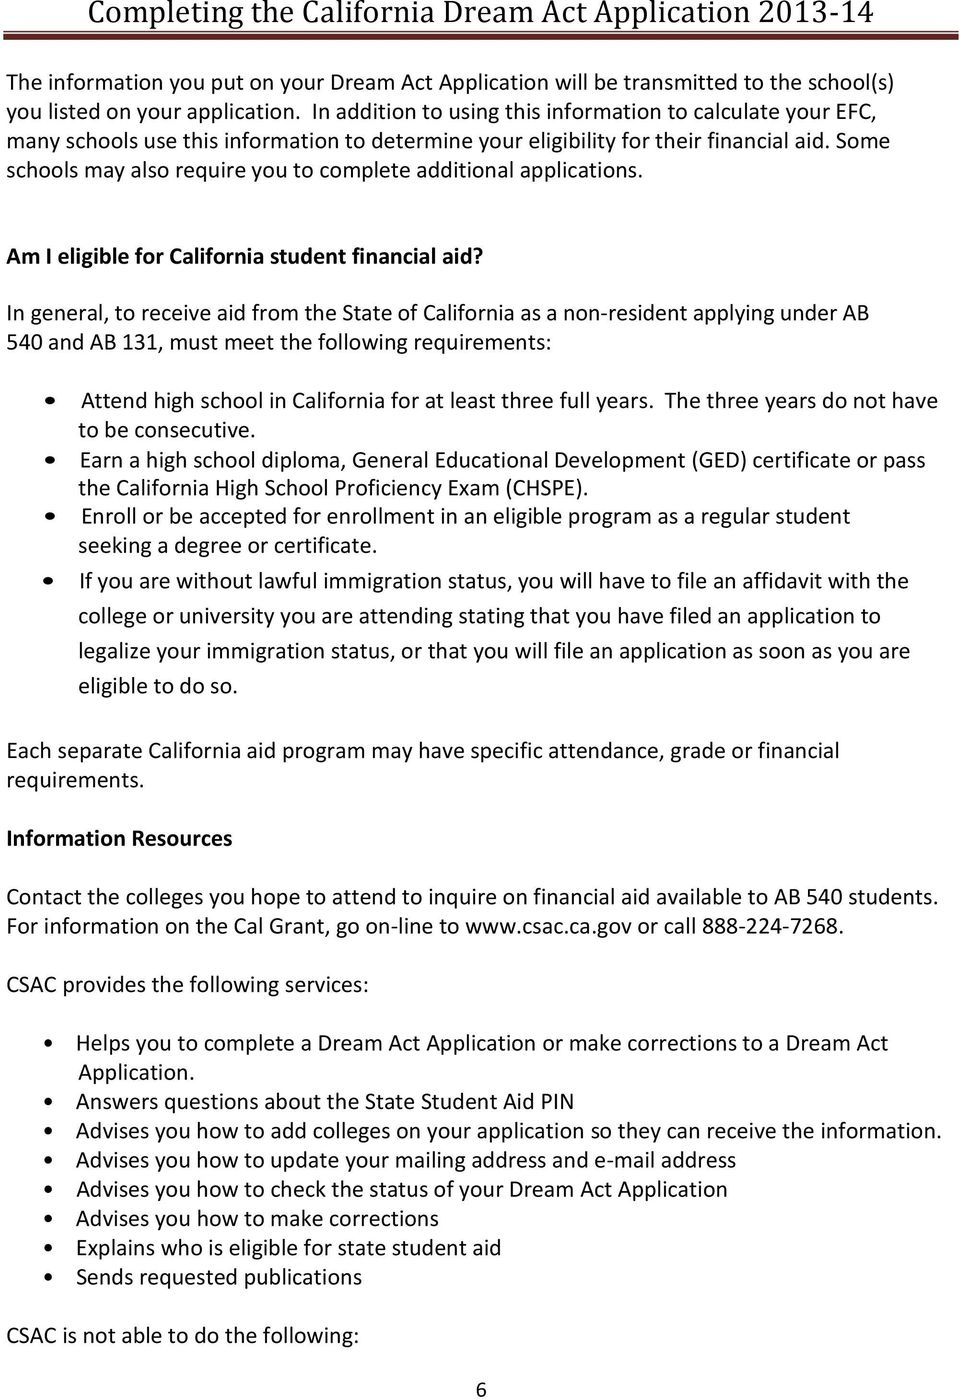 Some schools may also require you to complete additional applications. Am I eligible for California student financial aid?